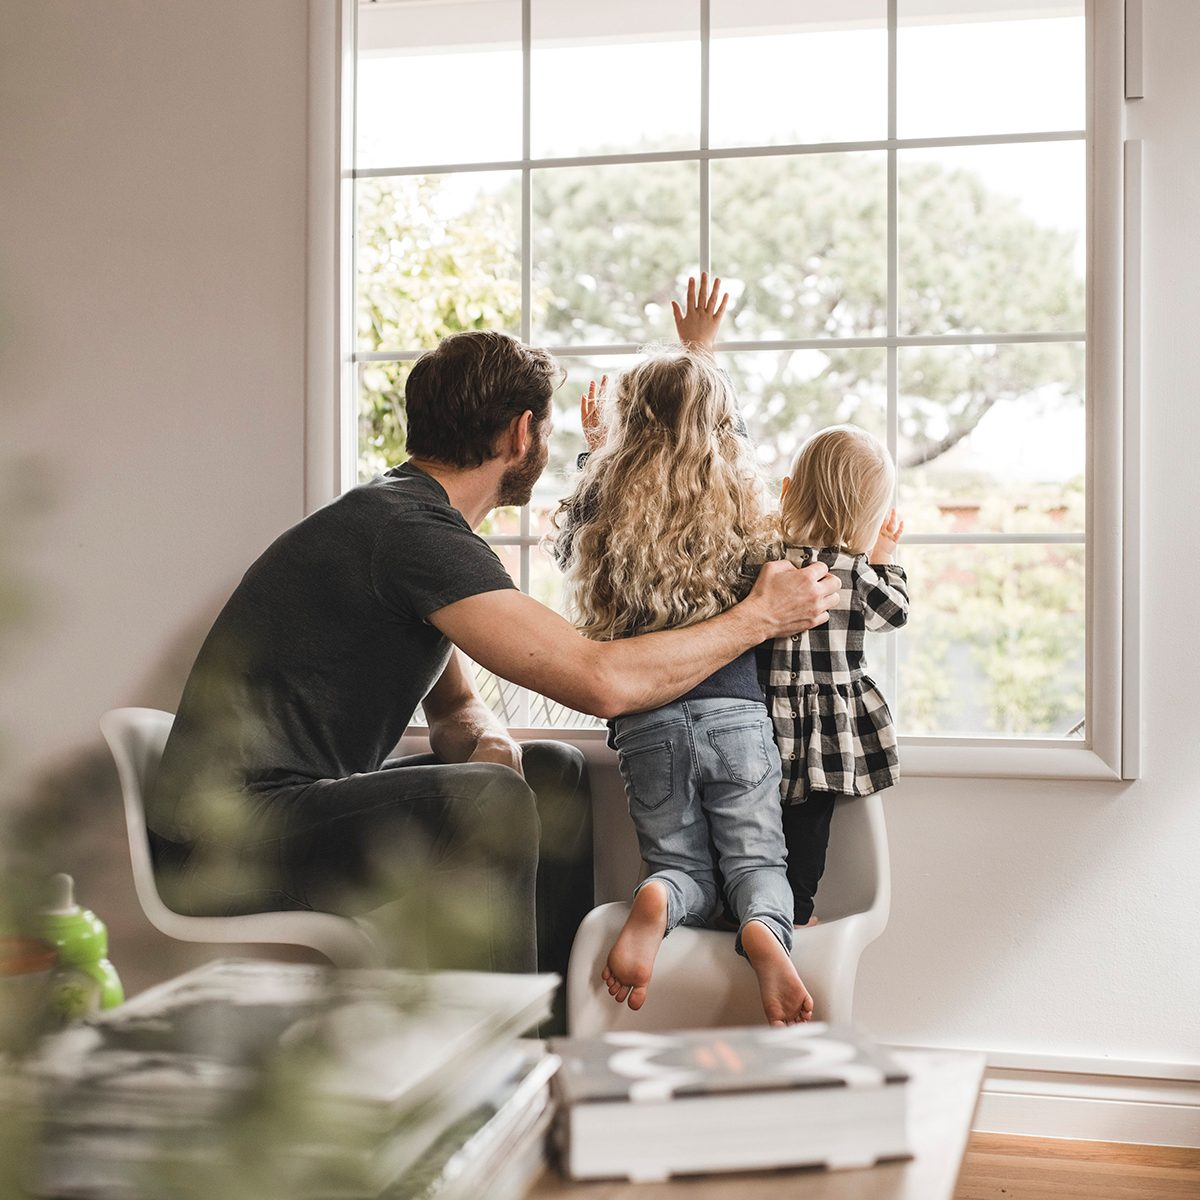 Father and two small kids looking out a window together